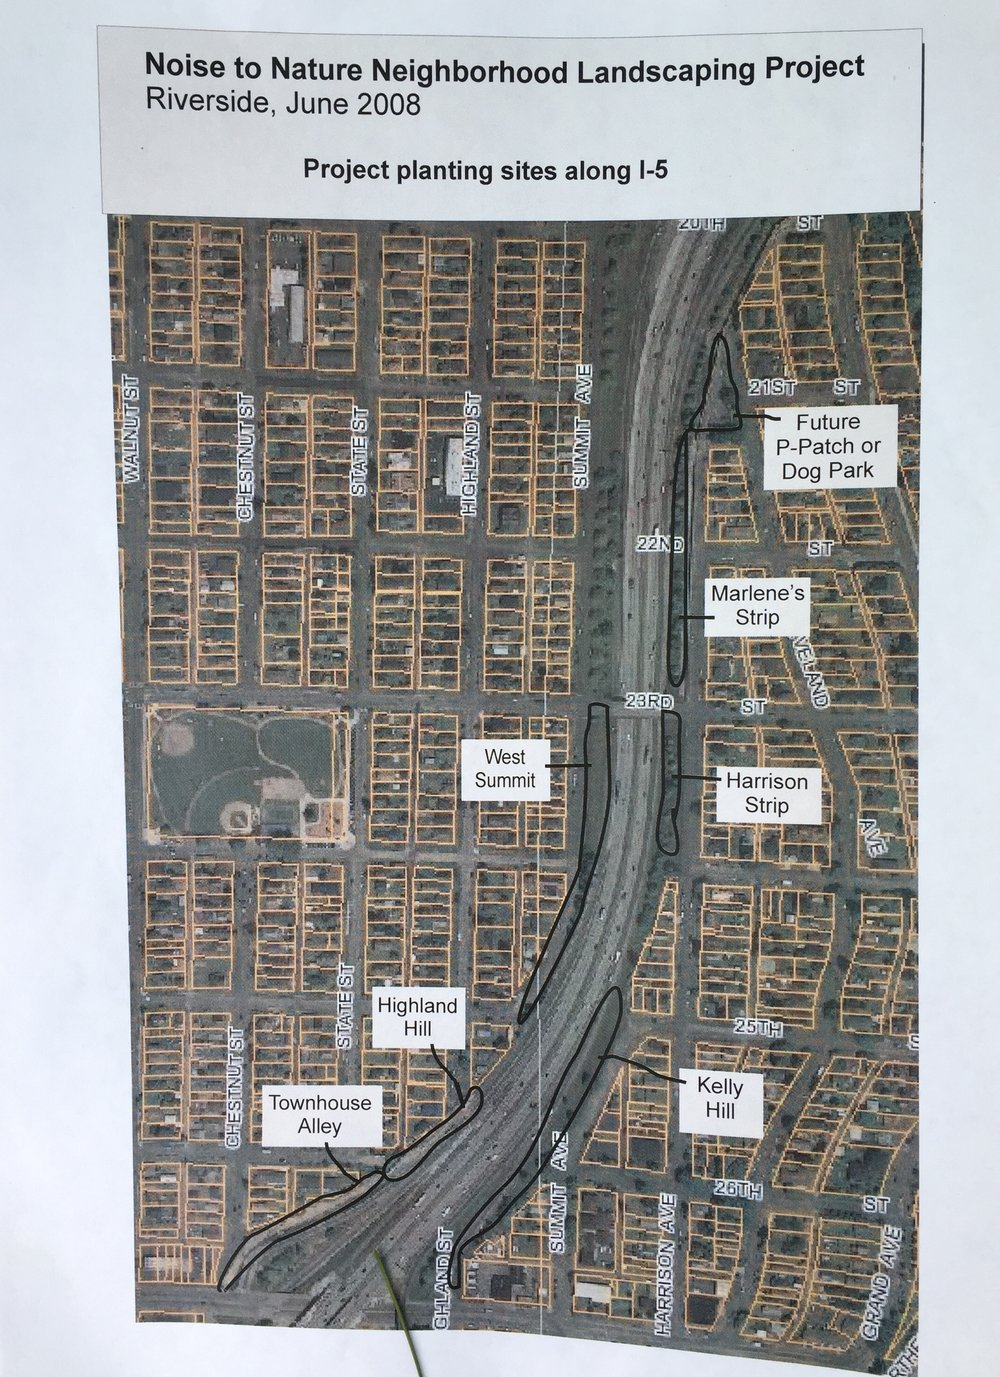 Plan of Site to be Planted along I-5.